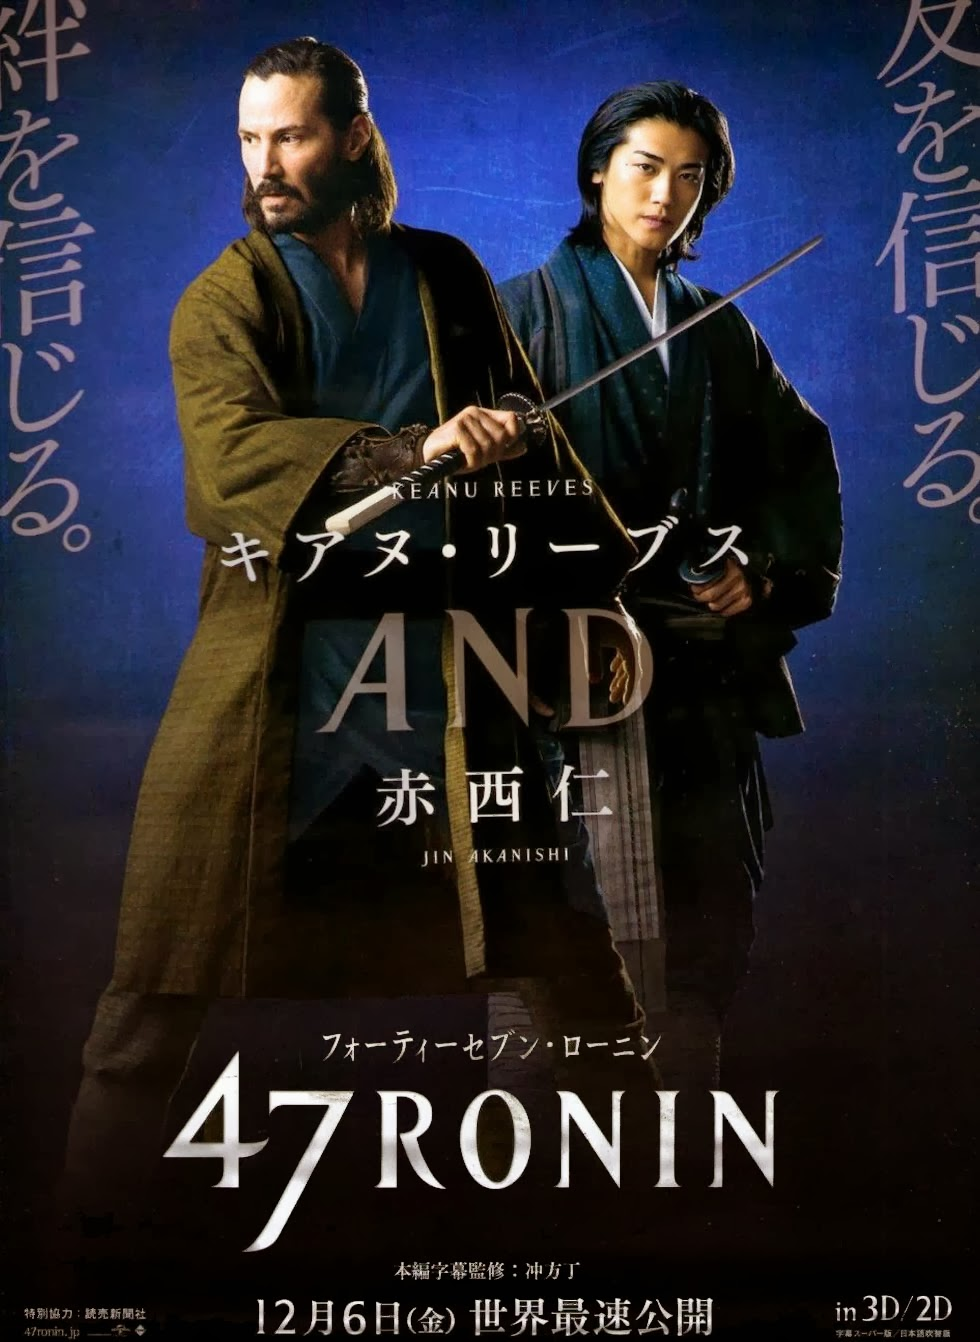 Watch 47 Ronin 2013 online